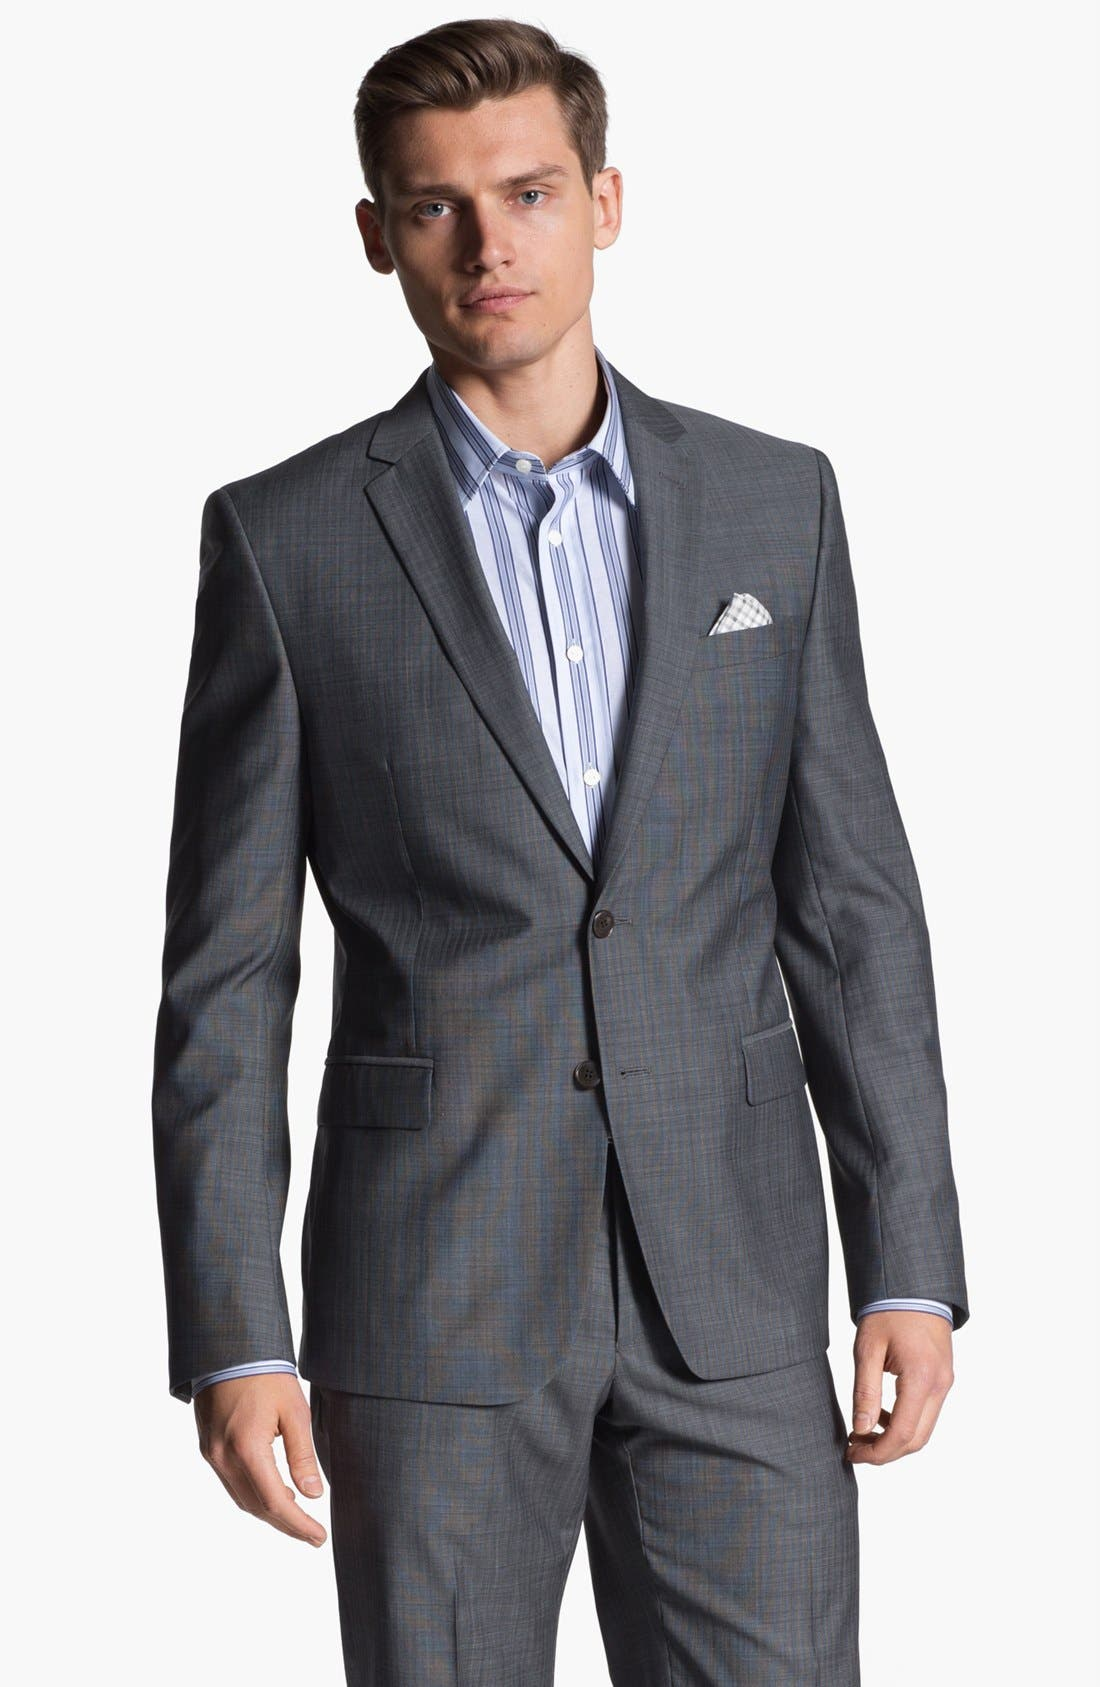 Main Image - Versace Trim Fit Wool Blend Suit